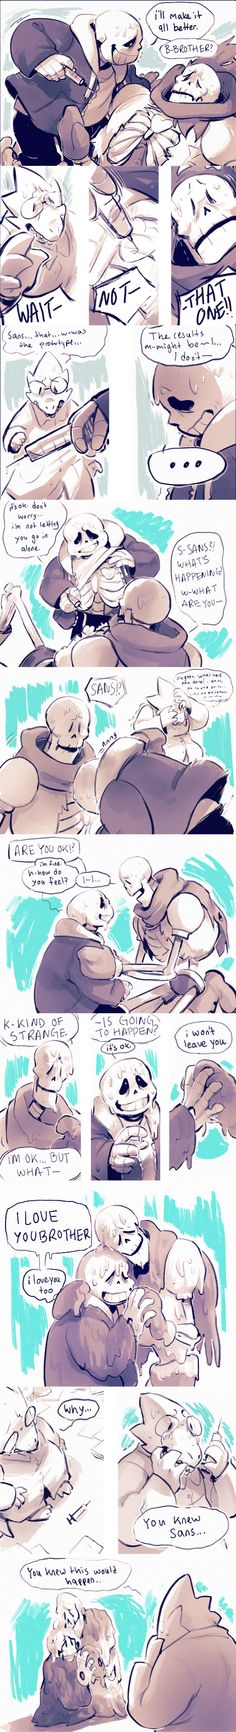 bromalgamate - Sans and Papyrus - comic (2/2) - http://moofrog.tumblr.com/post/133567061885/since-the-comic-for-the-bromalgamate-au-is-kinda